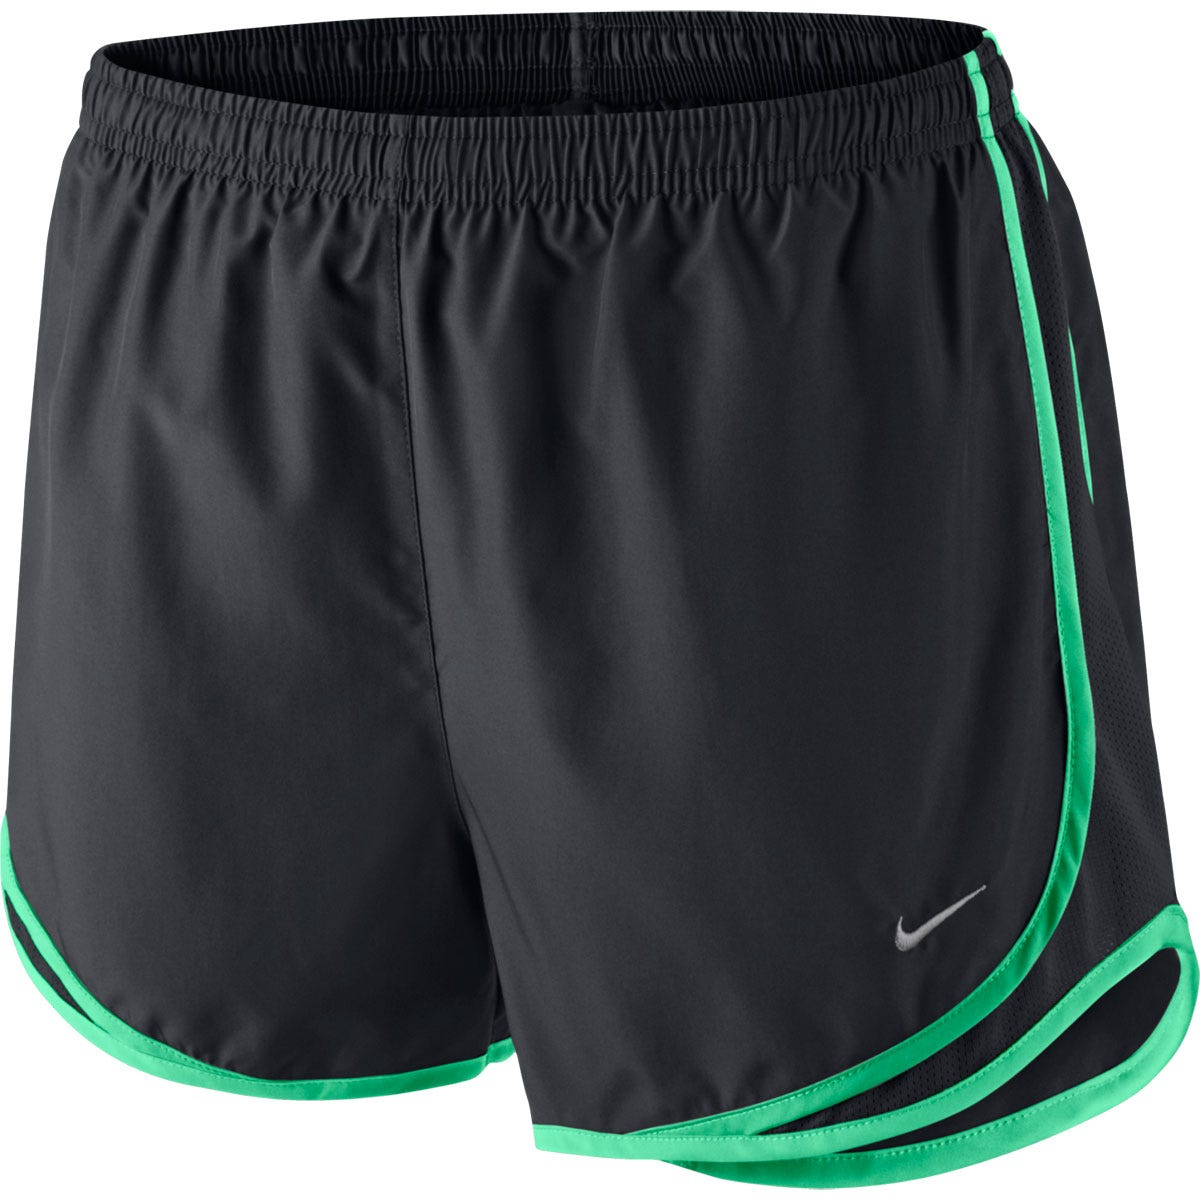 Tempo Short by Nike; Womens Softball - X-Small Black/Blue Lagoon